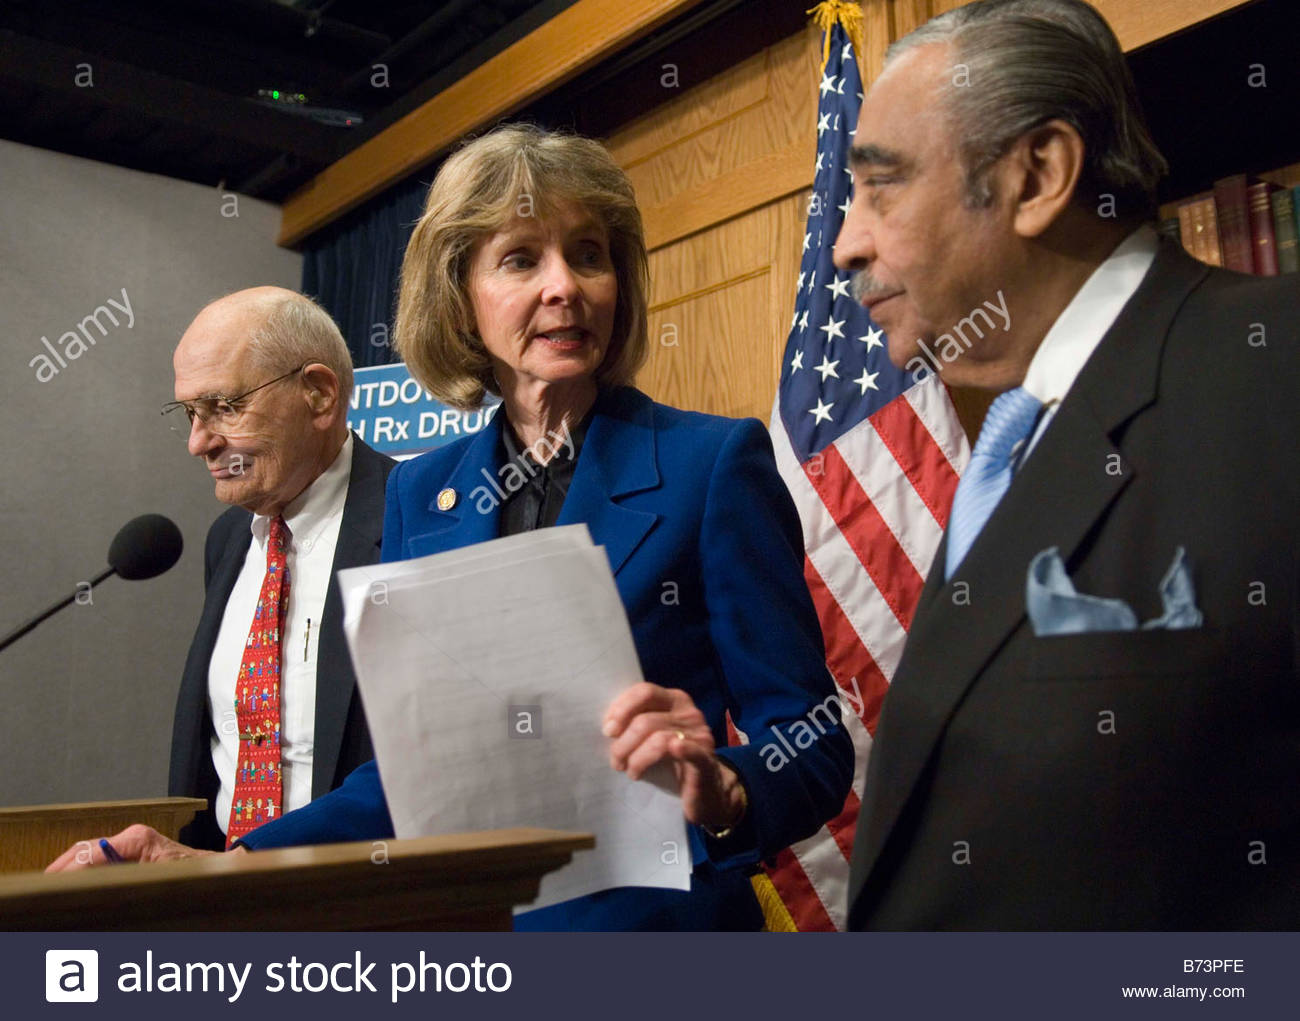 Charming 04 06 06 House Energy And Commerce Ranking Democrat John D Dingell D Mich  Rep Lois Capps D Calif And House Ways And Means Rankin